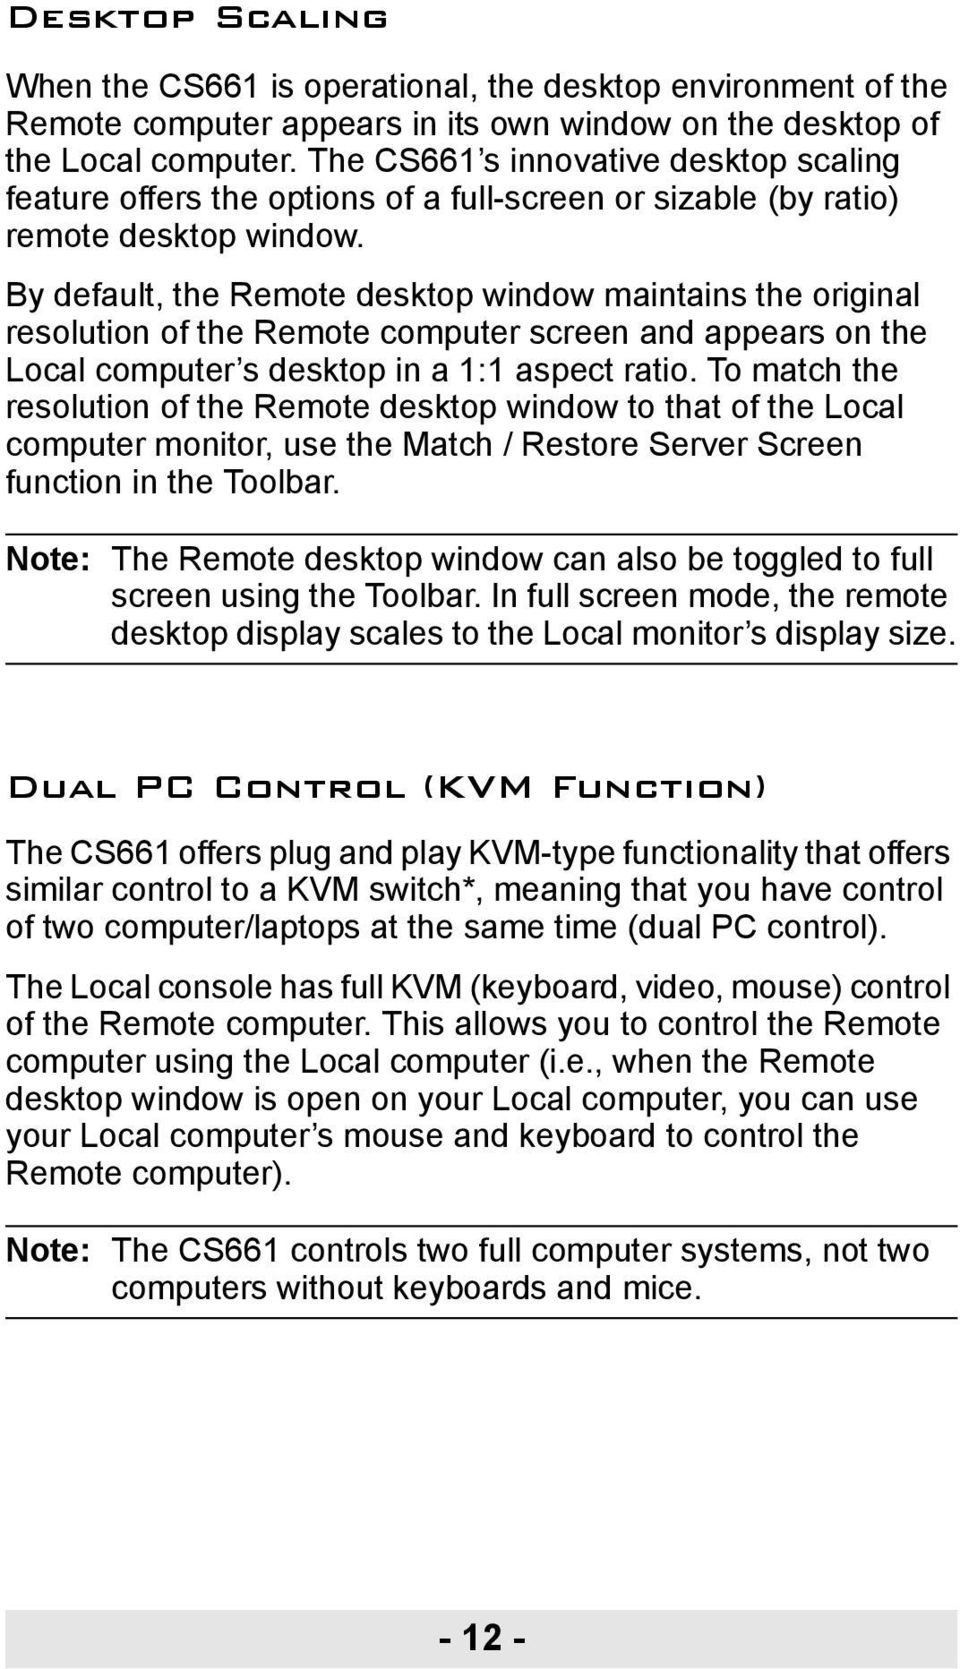 By default, the Remote desktop window maintains the original resolution of the Remote computer screen and appears on the Local computer s desktop in a 1:1 aspect ratio.